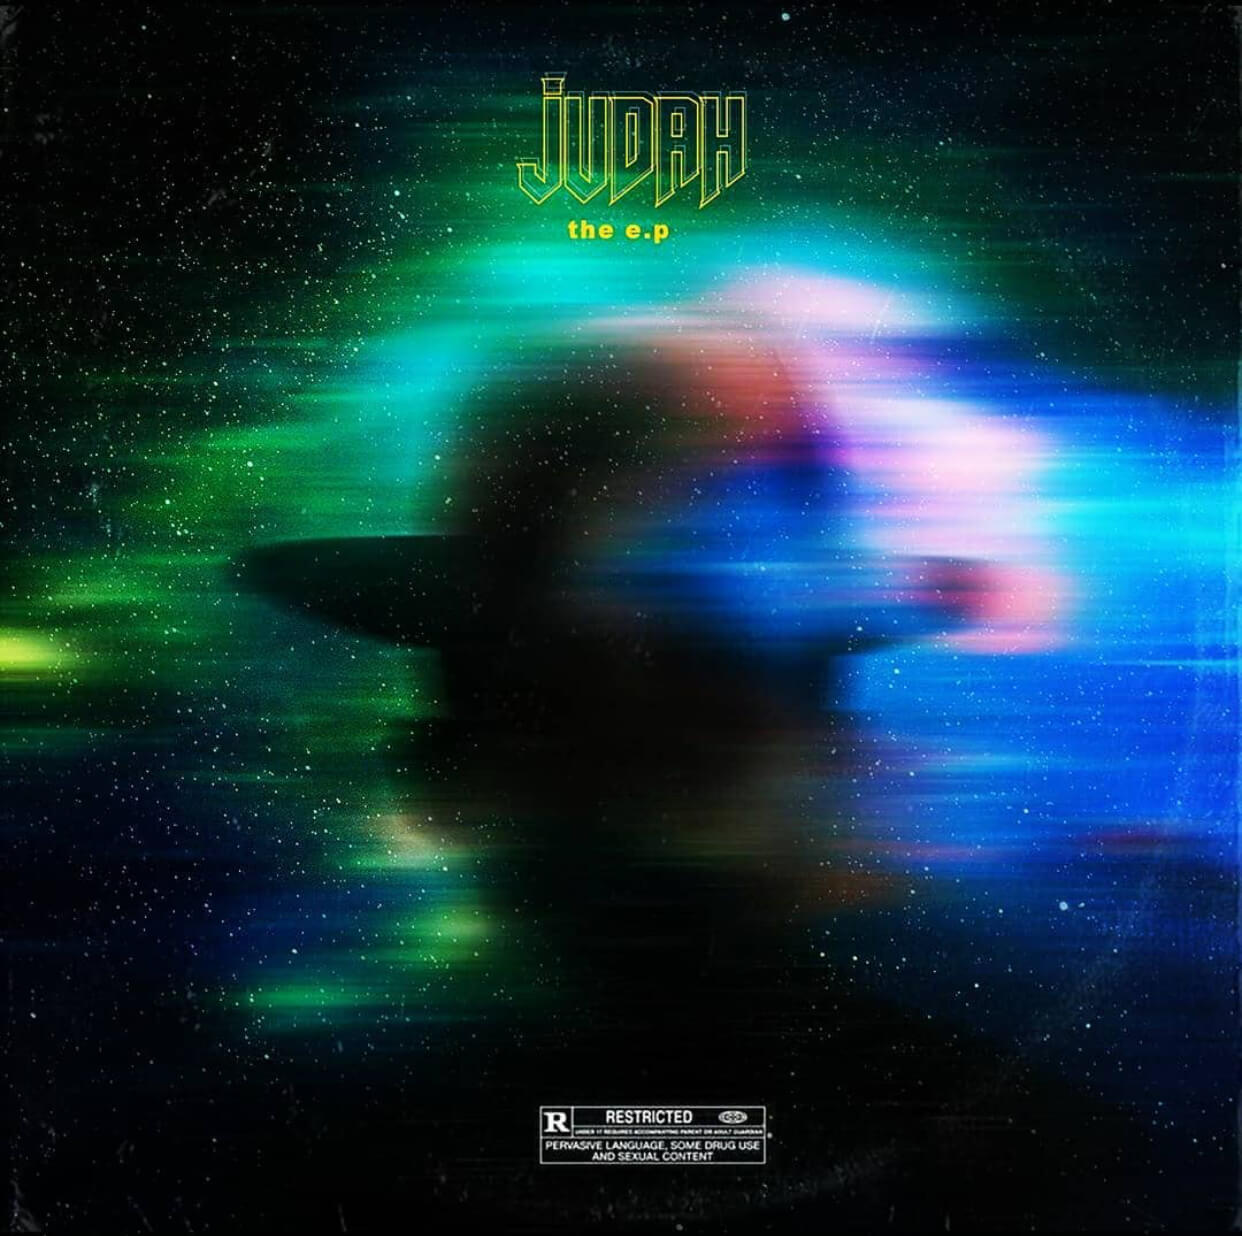 MI Abaga - The Judah EP review